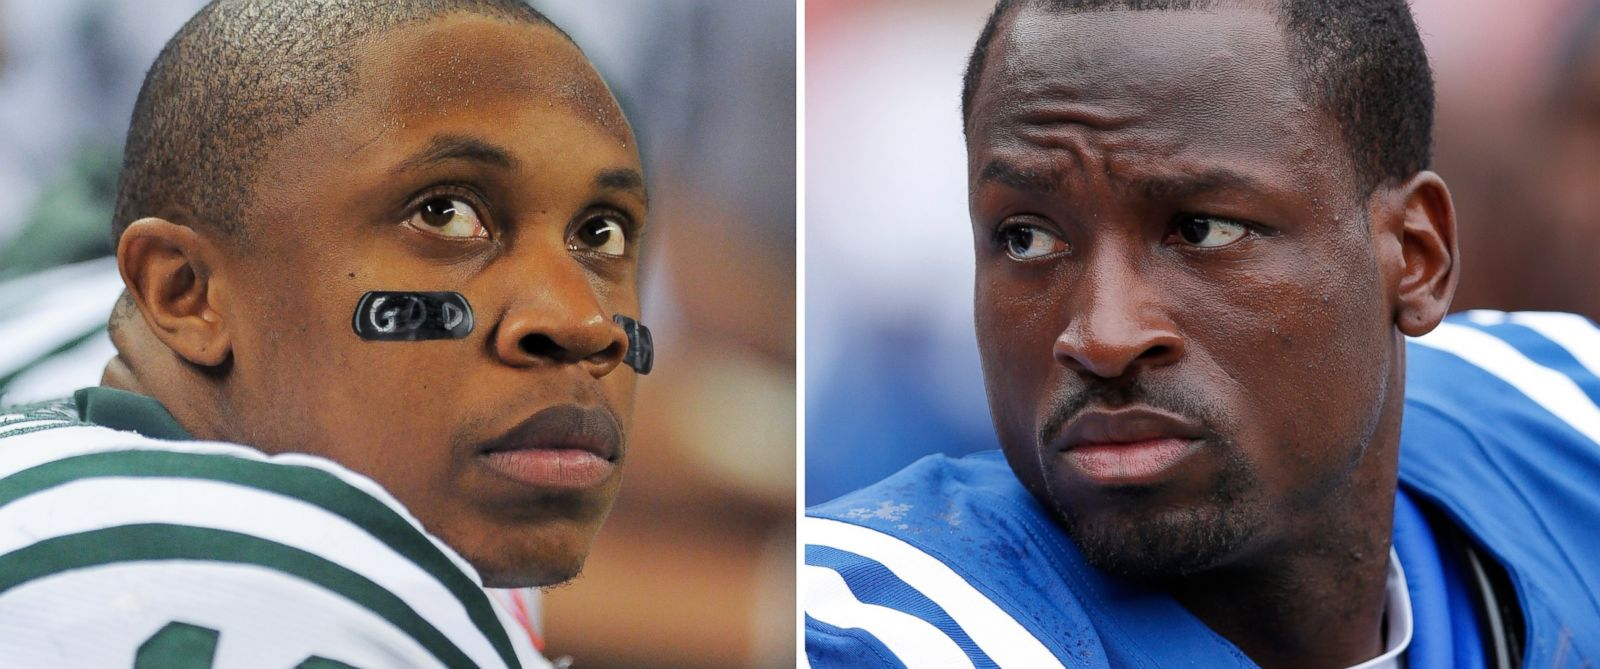 PHOTO: Thad Turner is pictured on Dec. 4, 2009 and Brandon King is pictured on Aug. 25, 2012.